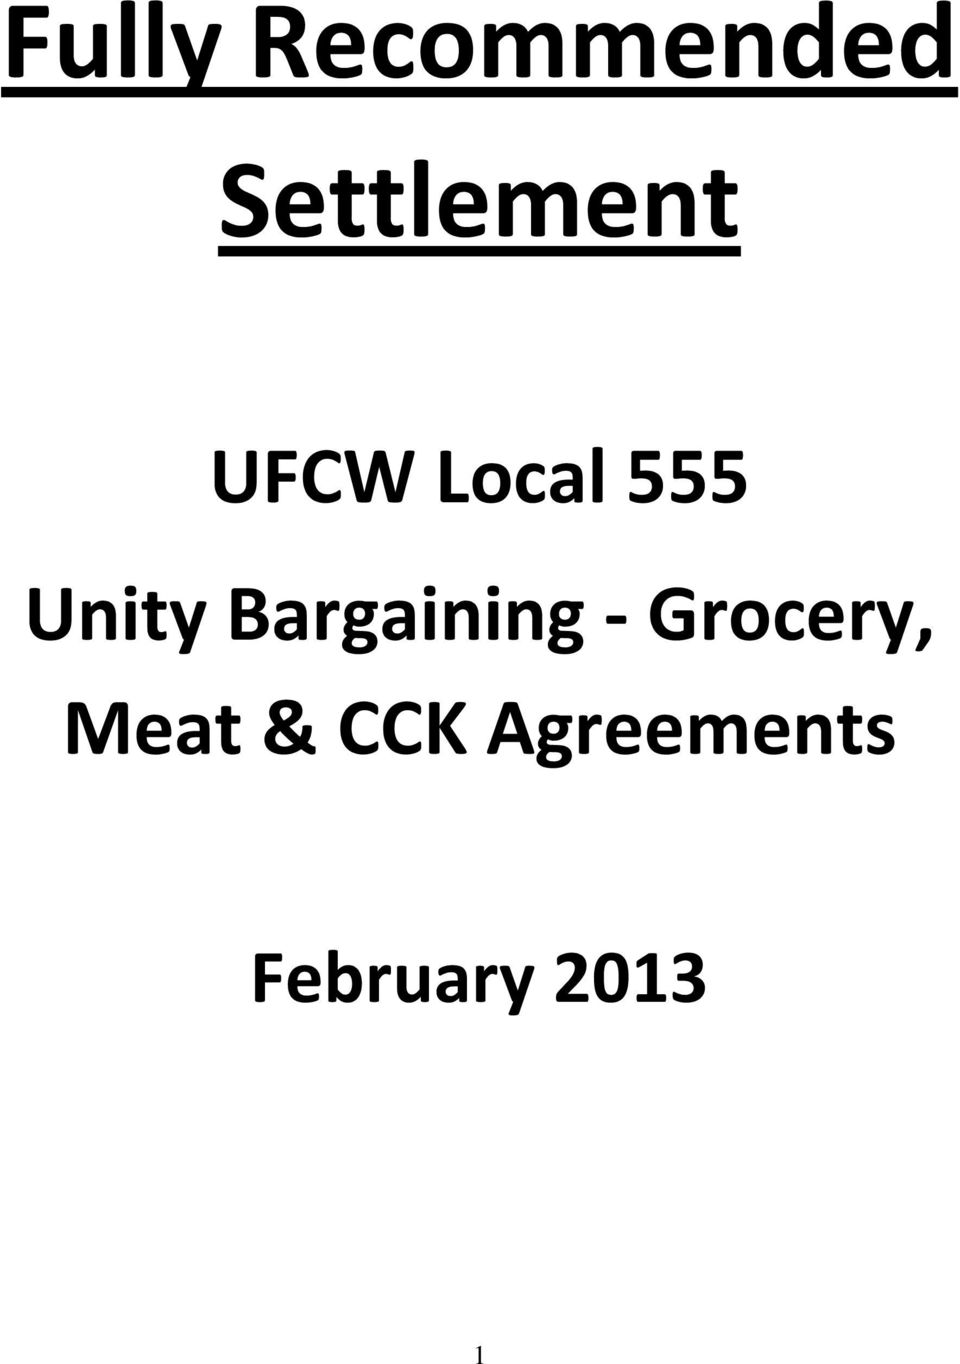 Fully Recommended Settlement  UFCW Local 555 Unity